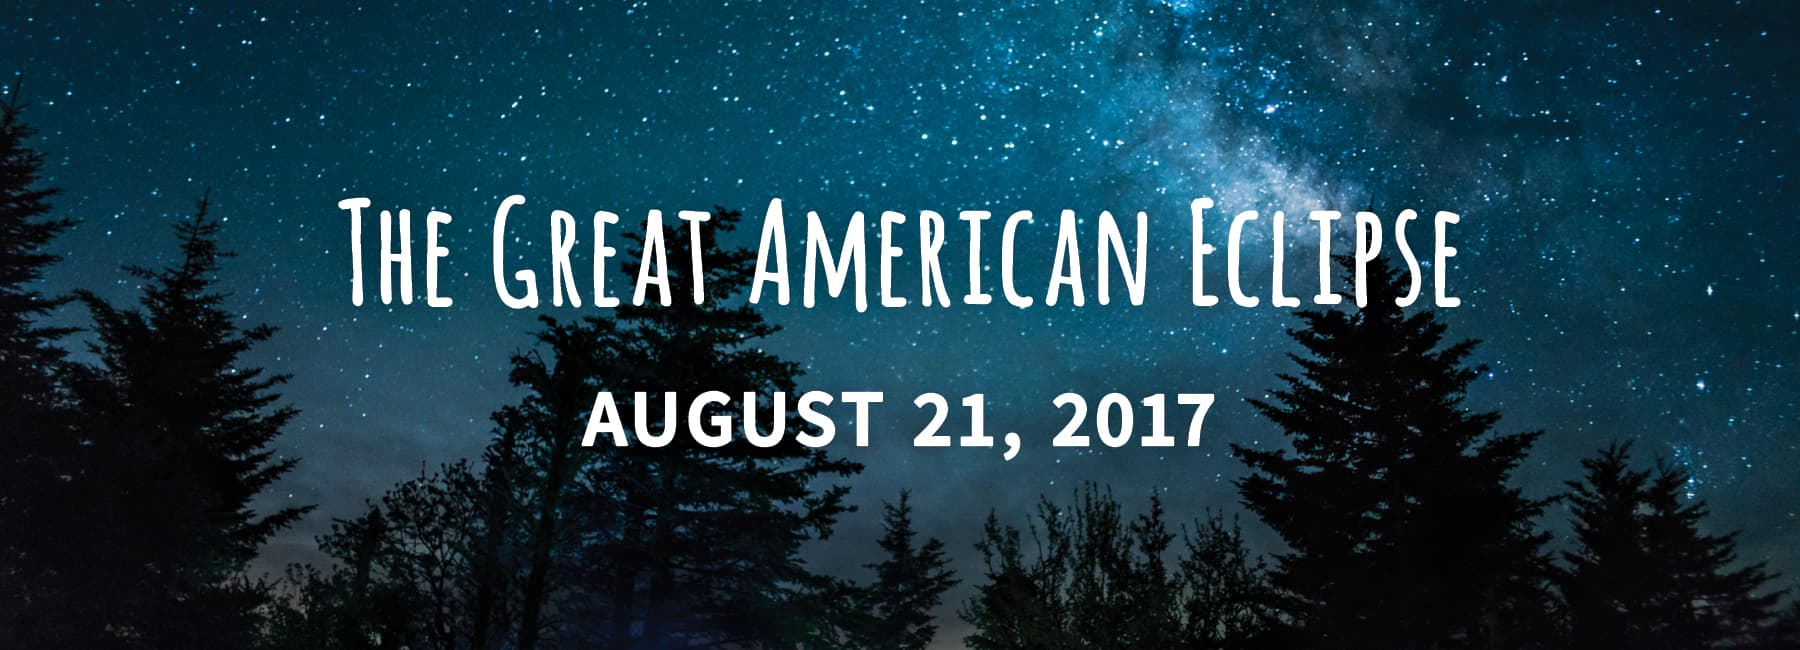 The Great American Solar Eclipse 2017 Haywood County